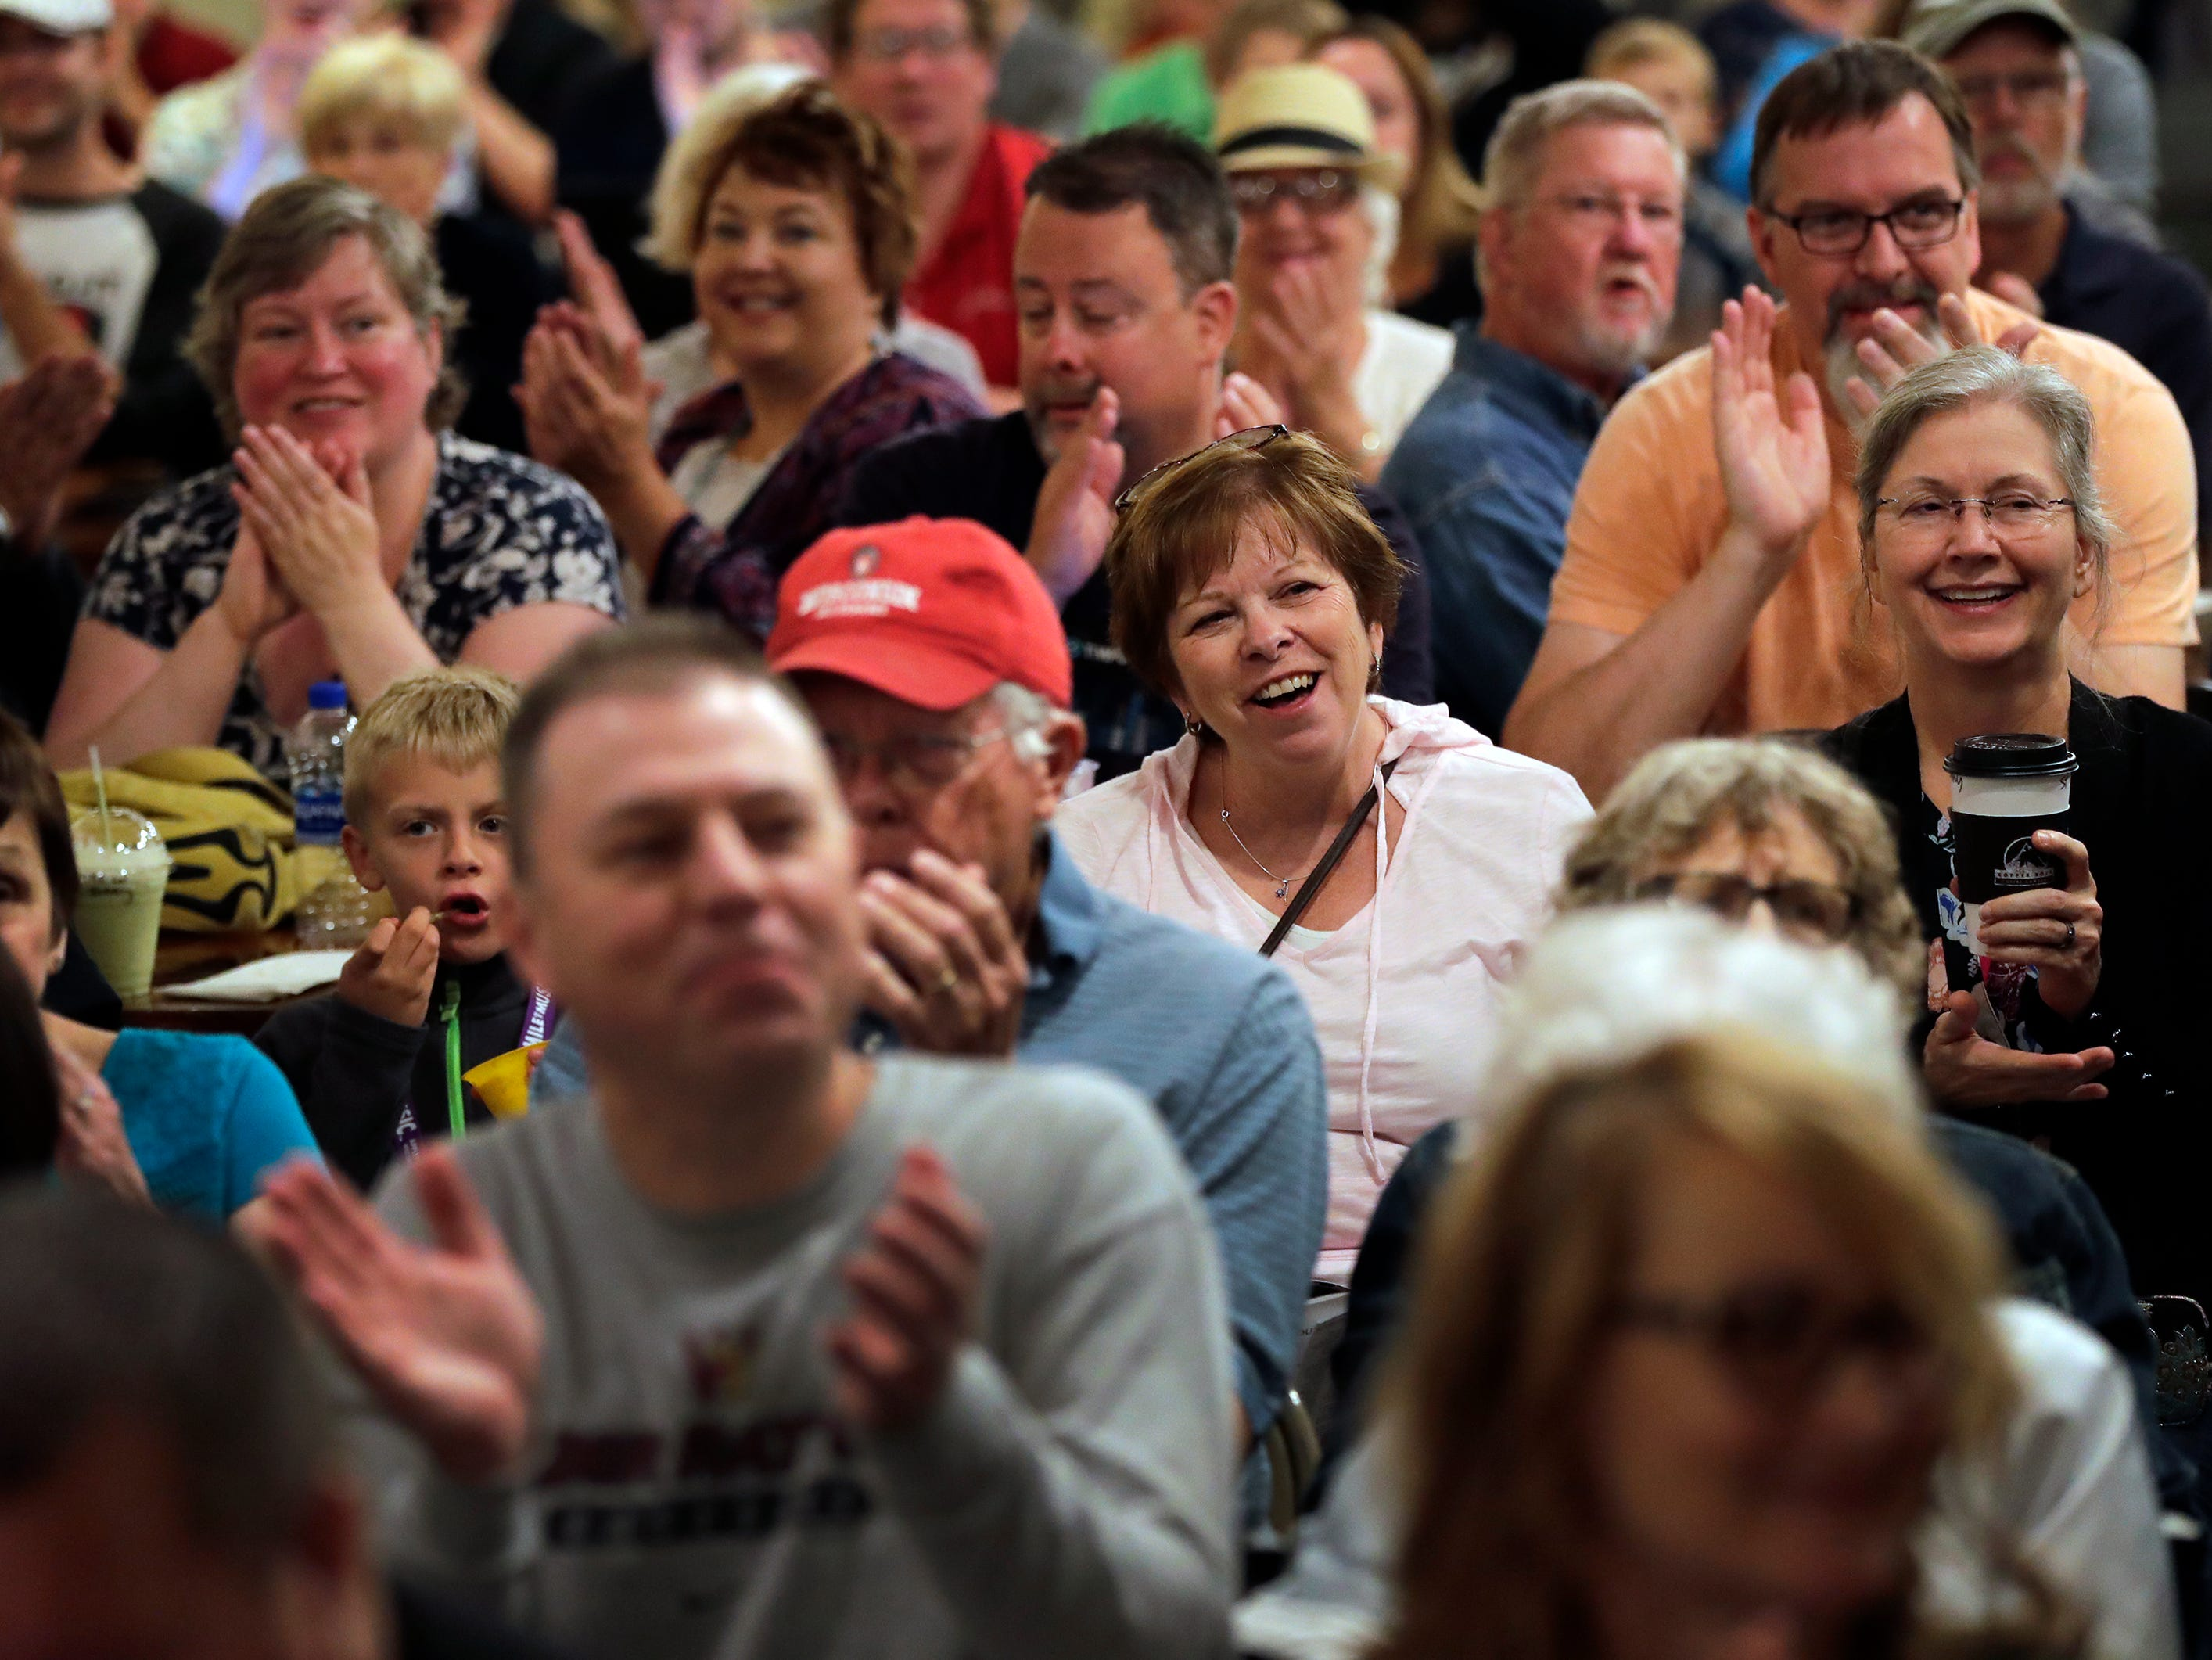 A large crowd welcomes Walt Hamburger as he kicks off Mile of Music during a performance at the Copper Rock Coffee Company Thursday, August 2, 2018, in Appleton, Wis.  Dan Powers/USA TODAY NETWORK-Wisconsin